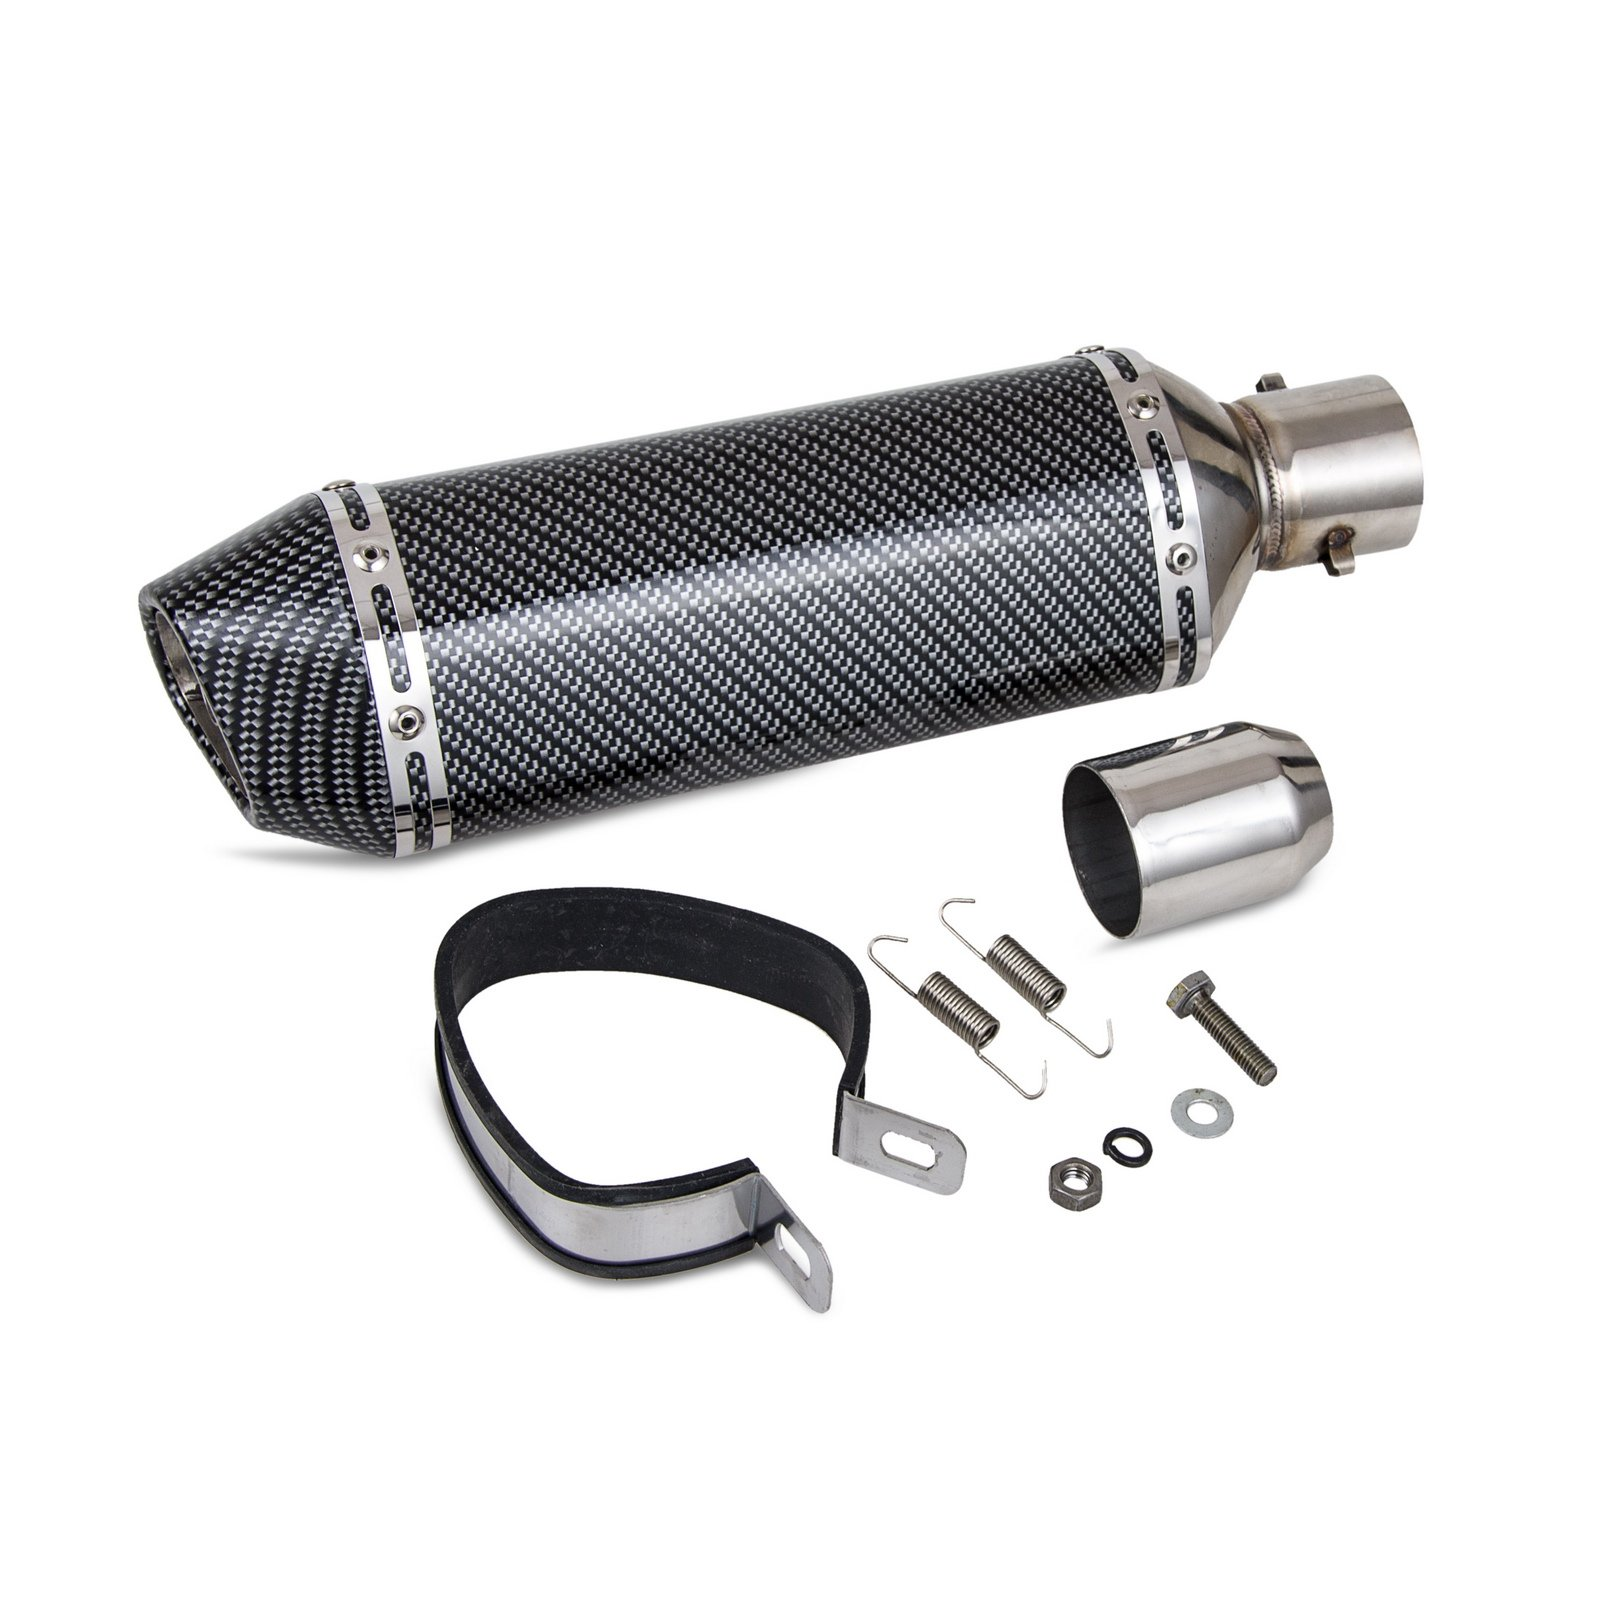 NICECNC Carbon Fiber Painted 1.5-2''Inlet Exhaust Muffler with Removable DB Killer for Street/Sport Motorcycles and Scooters with 38-51mm Diameter Exhaust Pipes